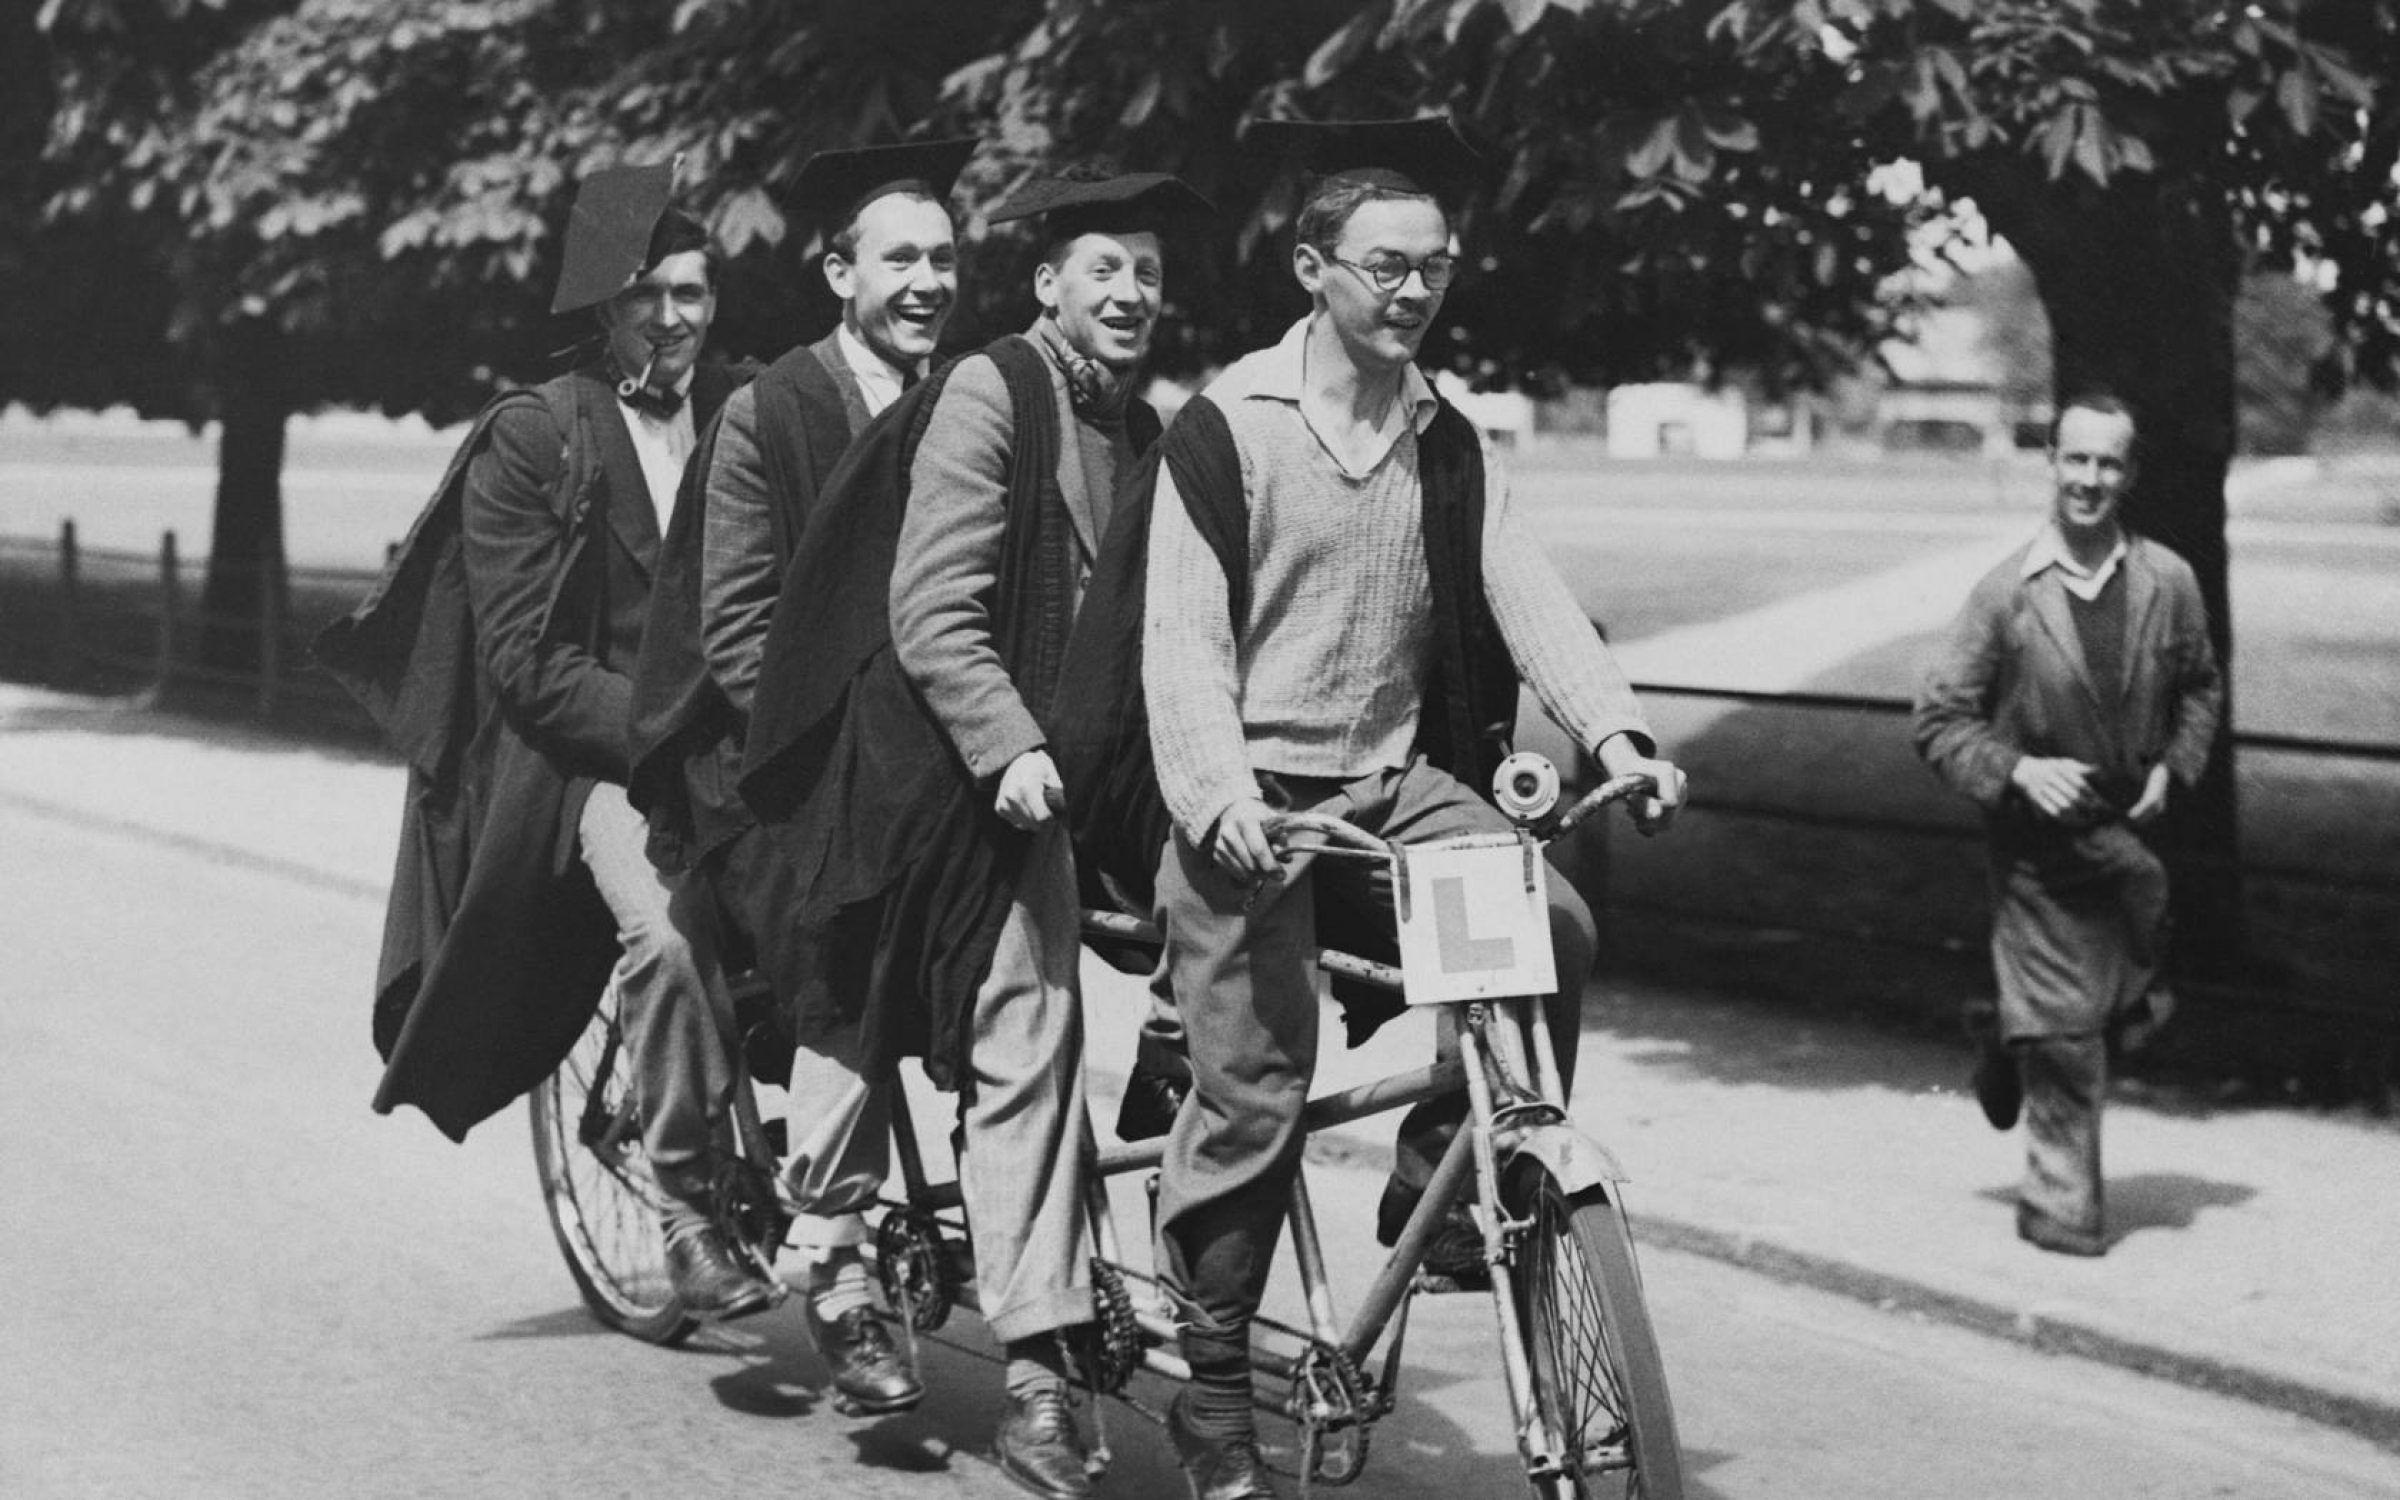 Four Cambridge students ride a four seat tandem bike on campus.